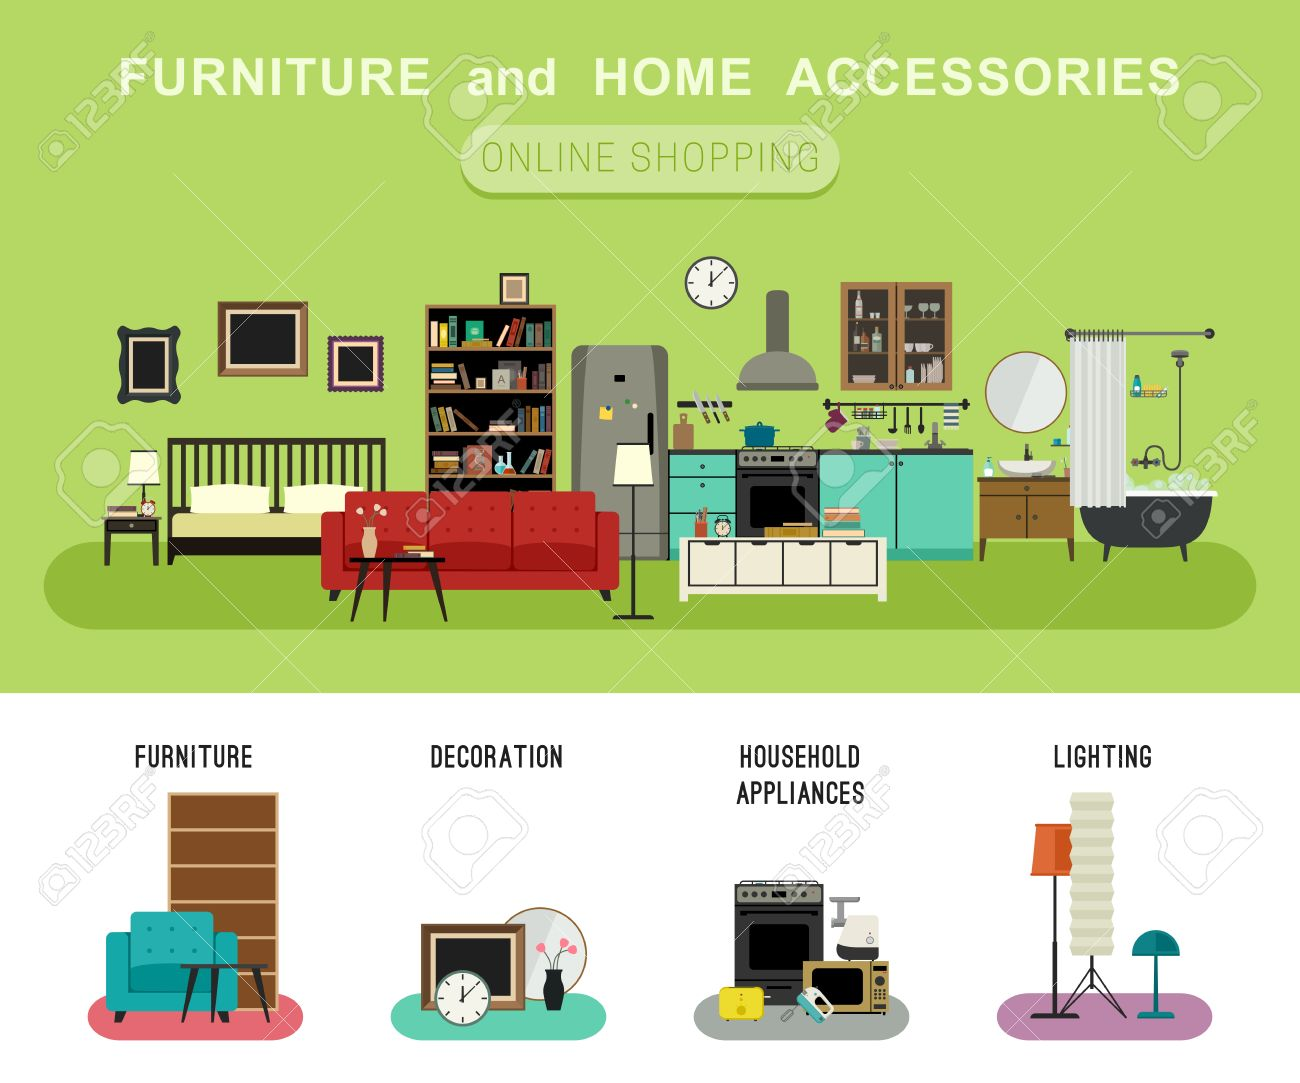 ... Decoration And Household Appliances. Furniture And Home Accessories  Banner With Vector Flat Icons Sofa, Bookshelf, Bed, Bathroom